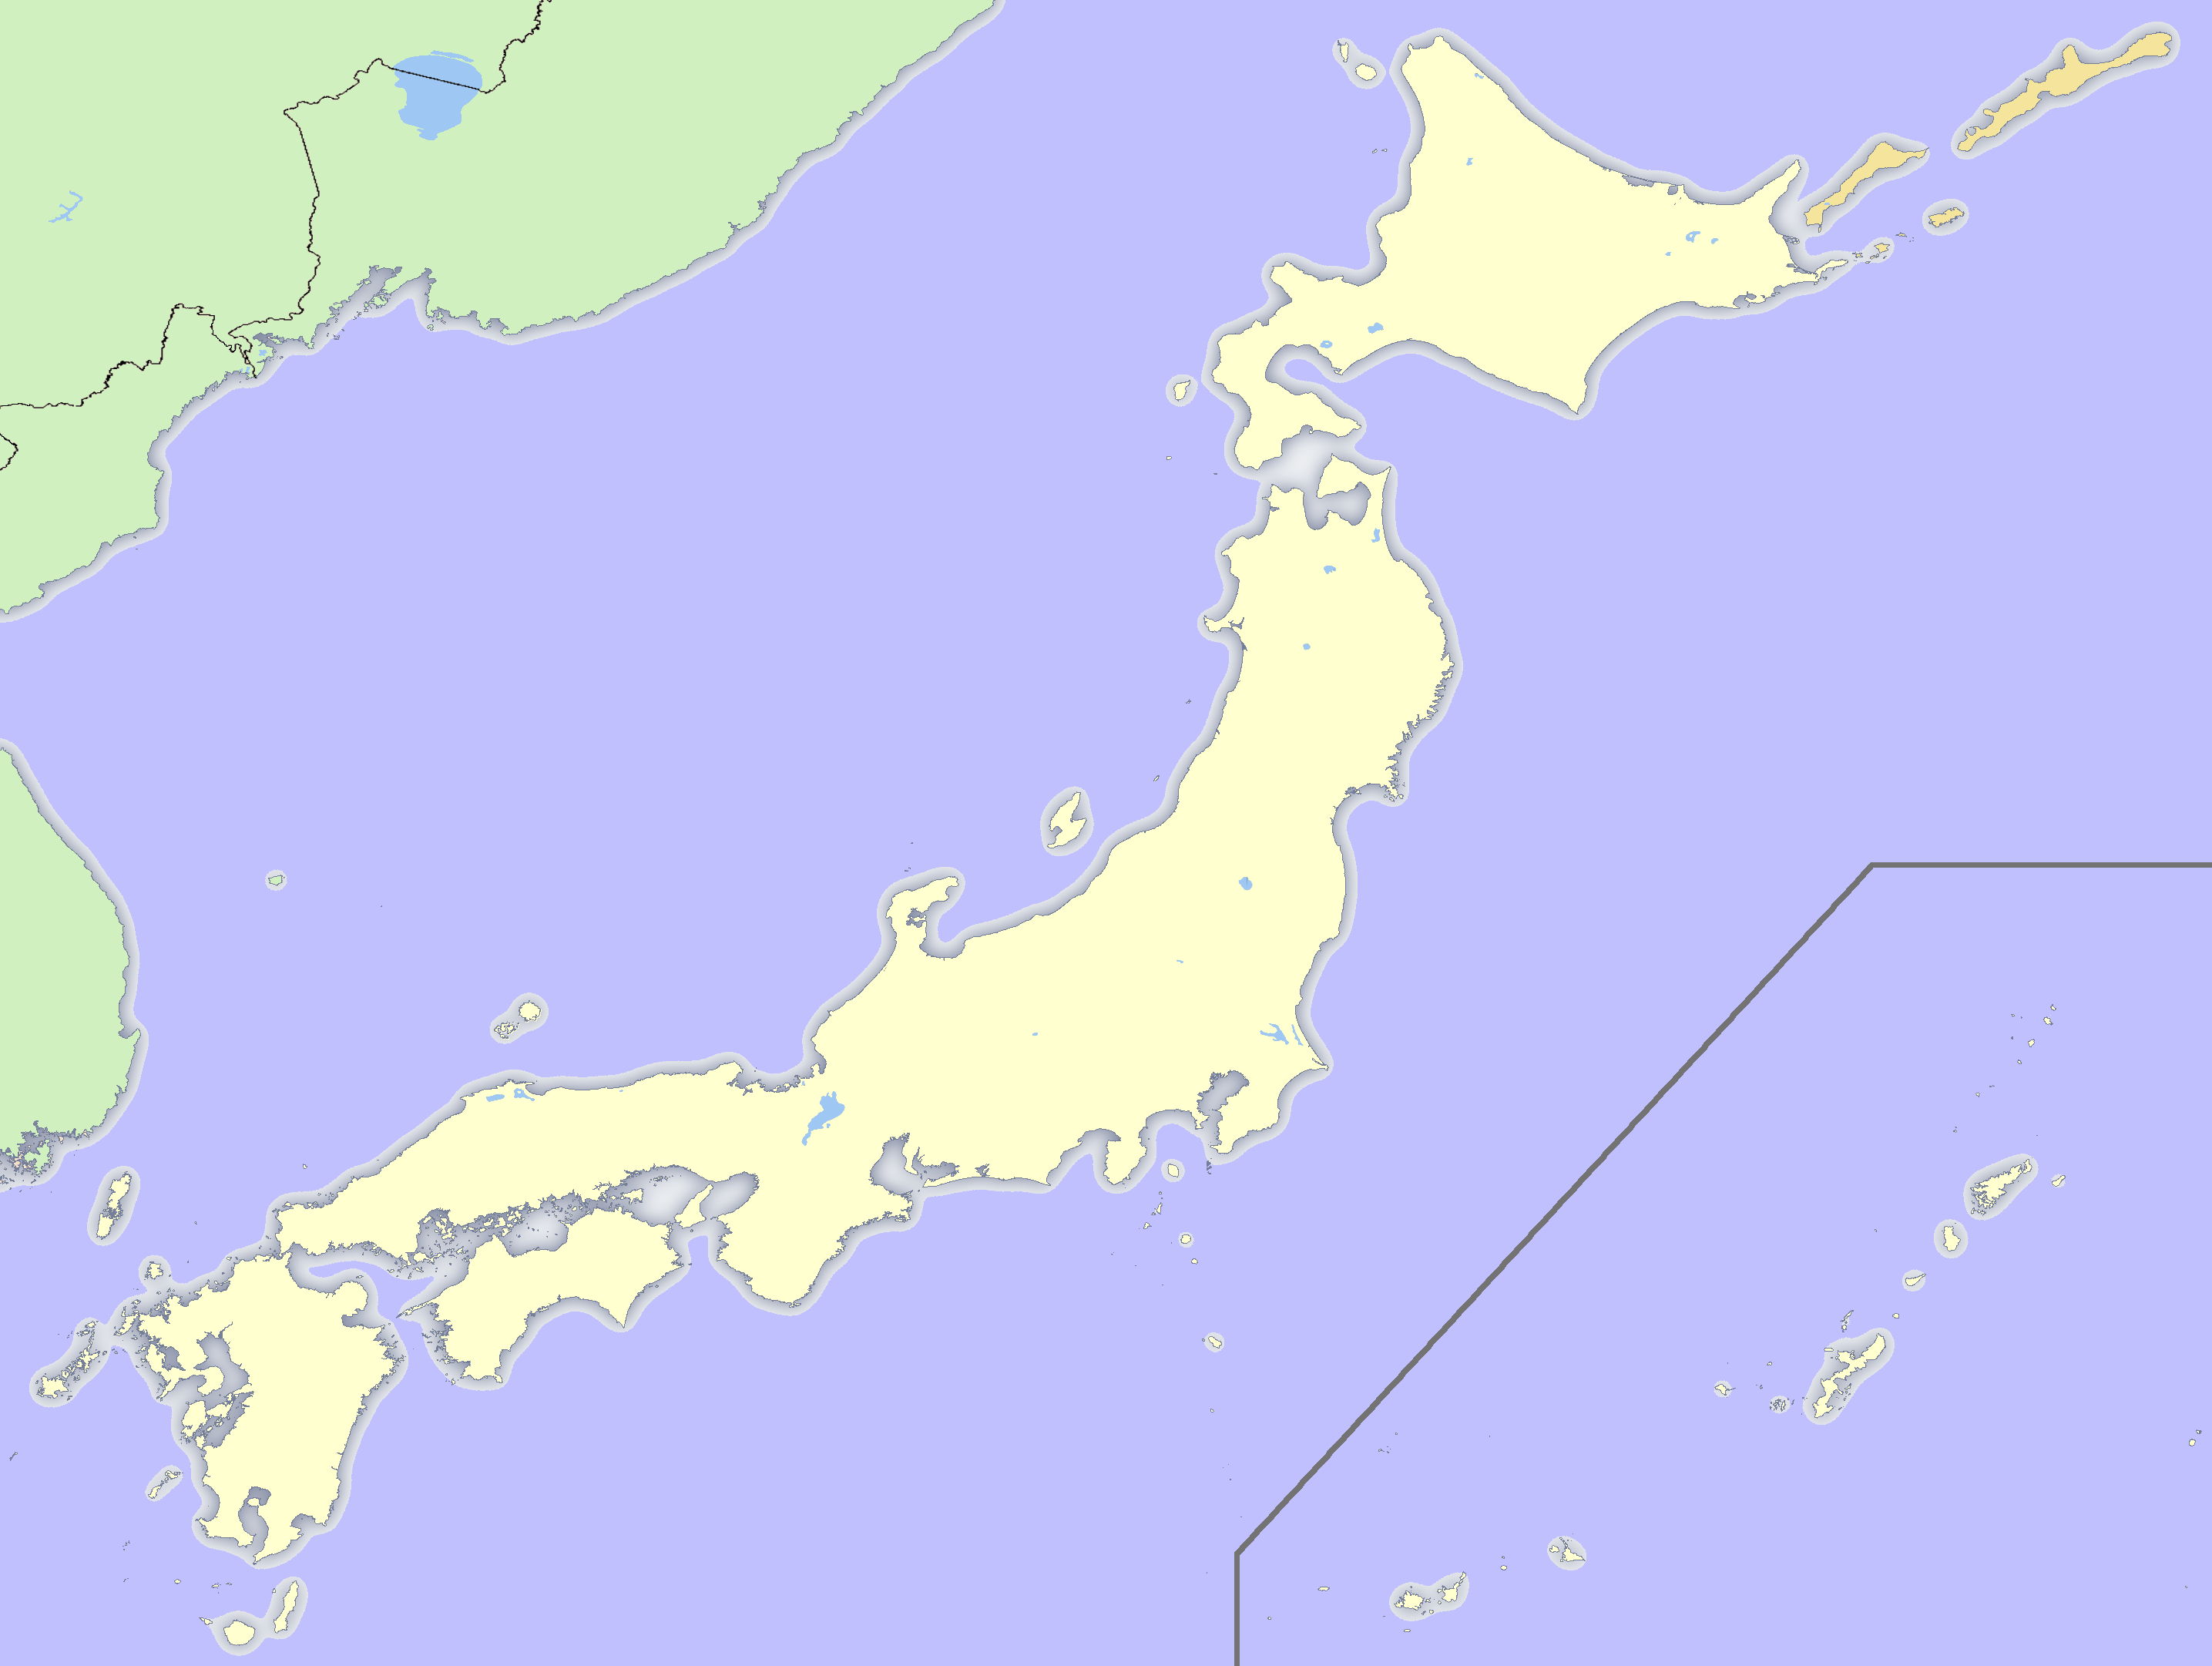 Somalia gird pictures of the location of japan